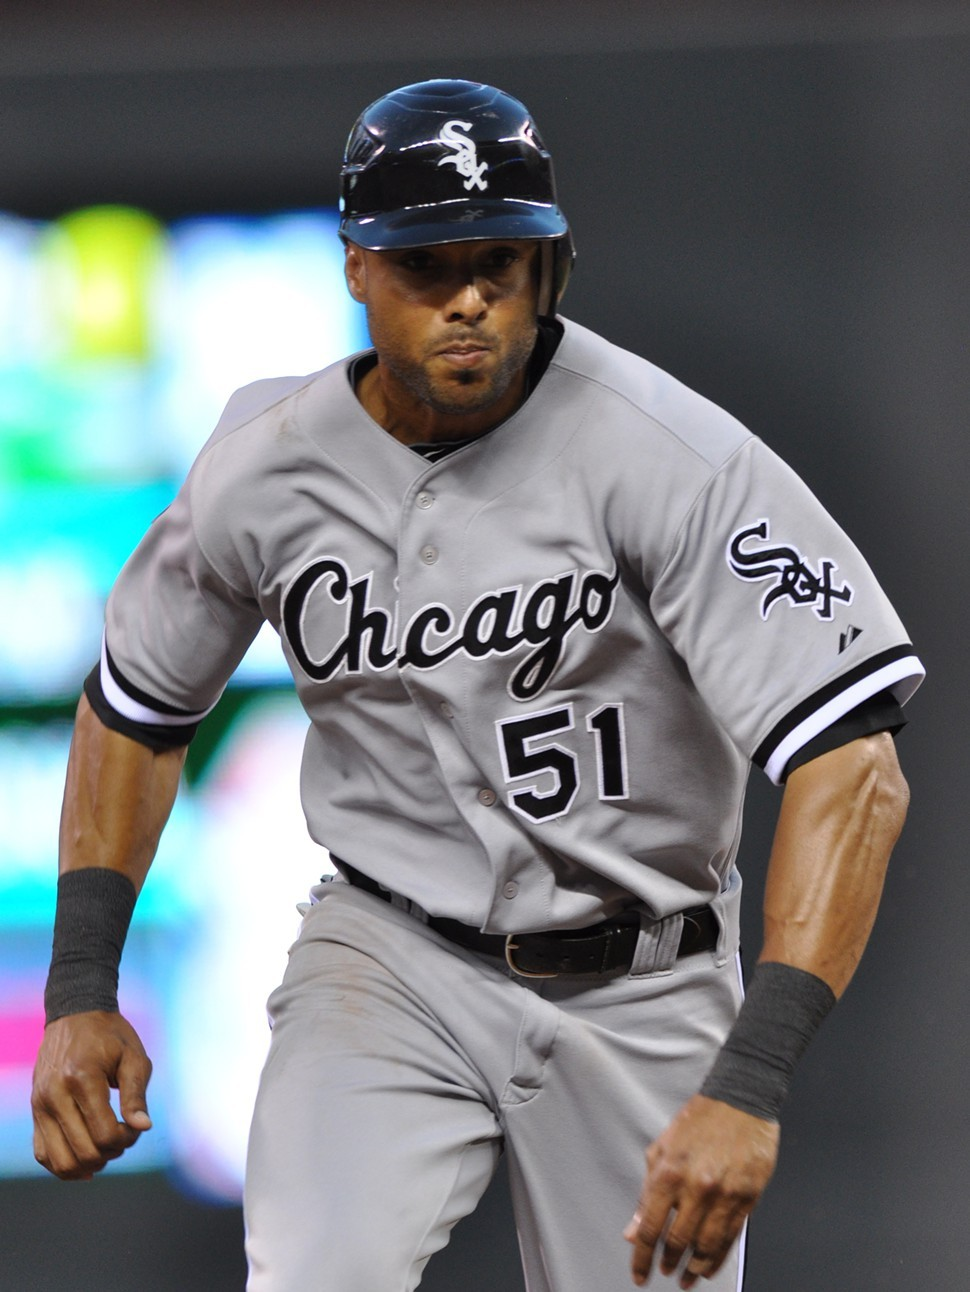 Alex Rios: embodiment of this years White Sox.